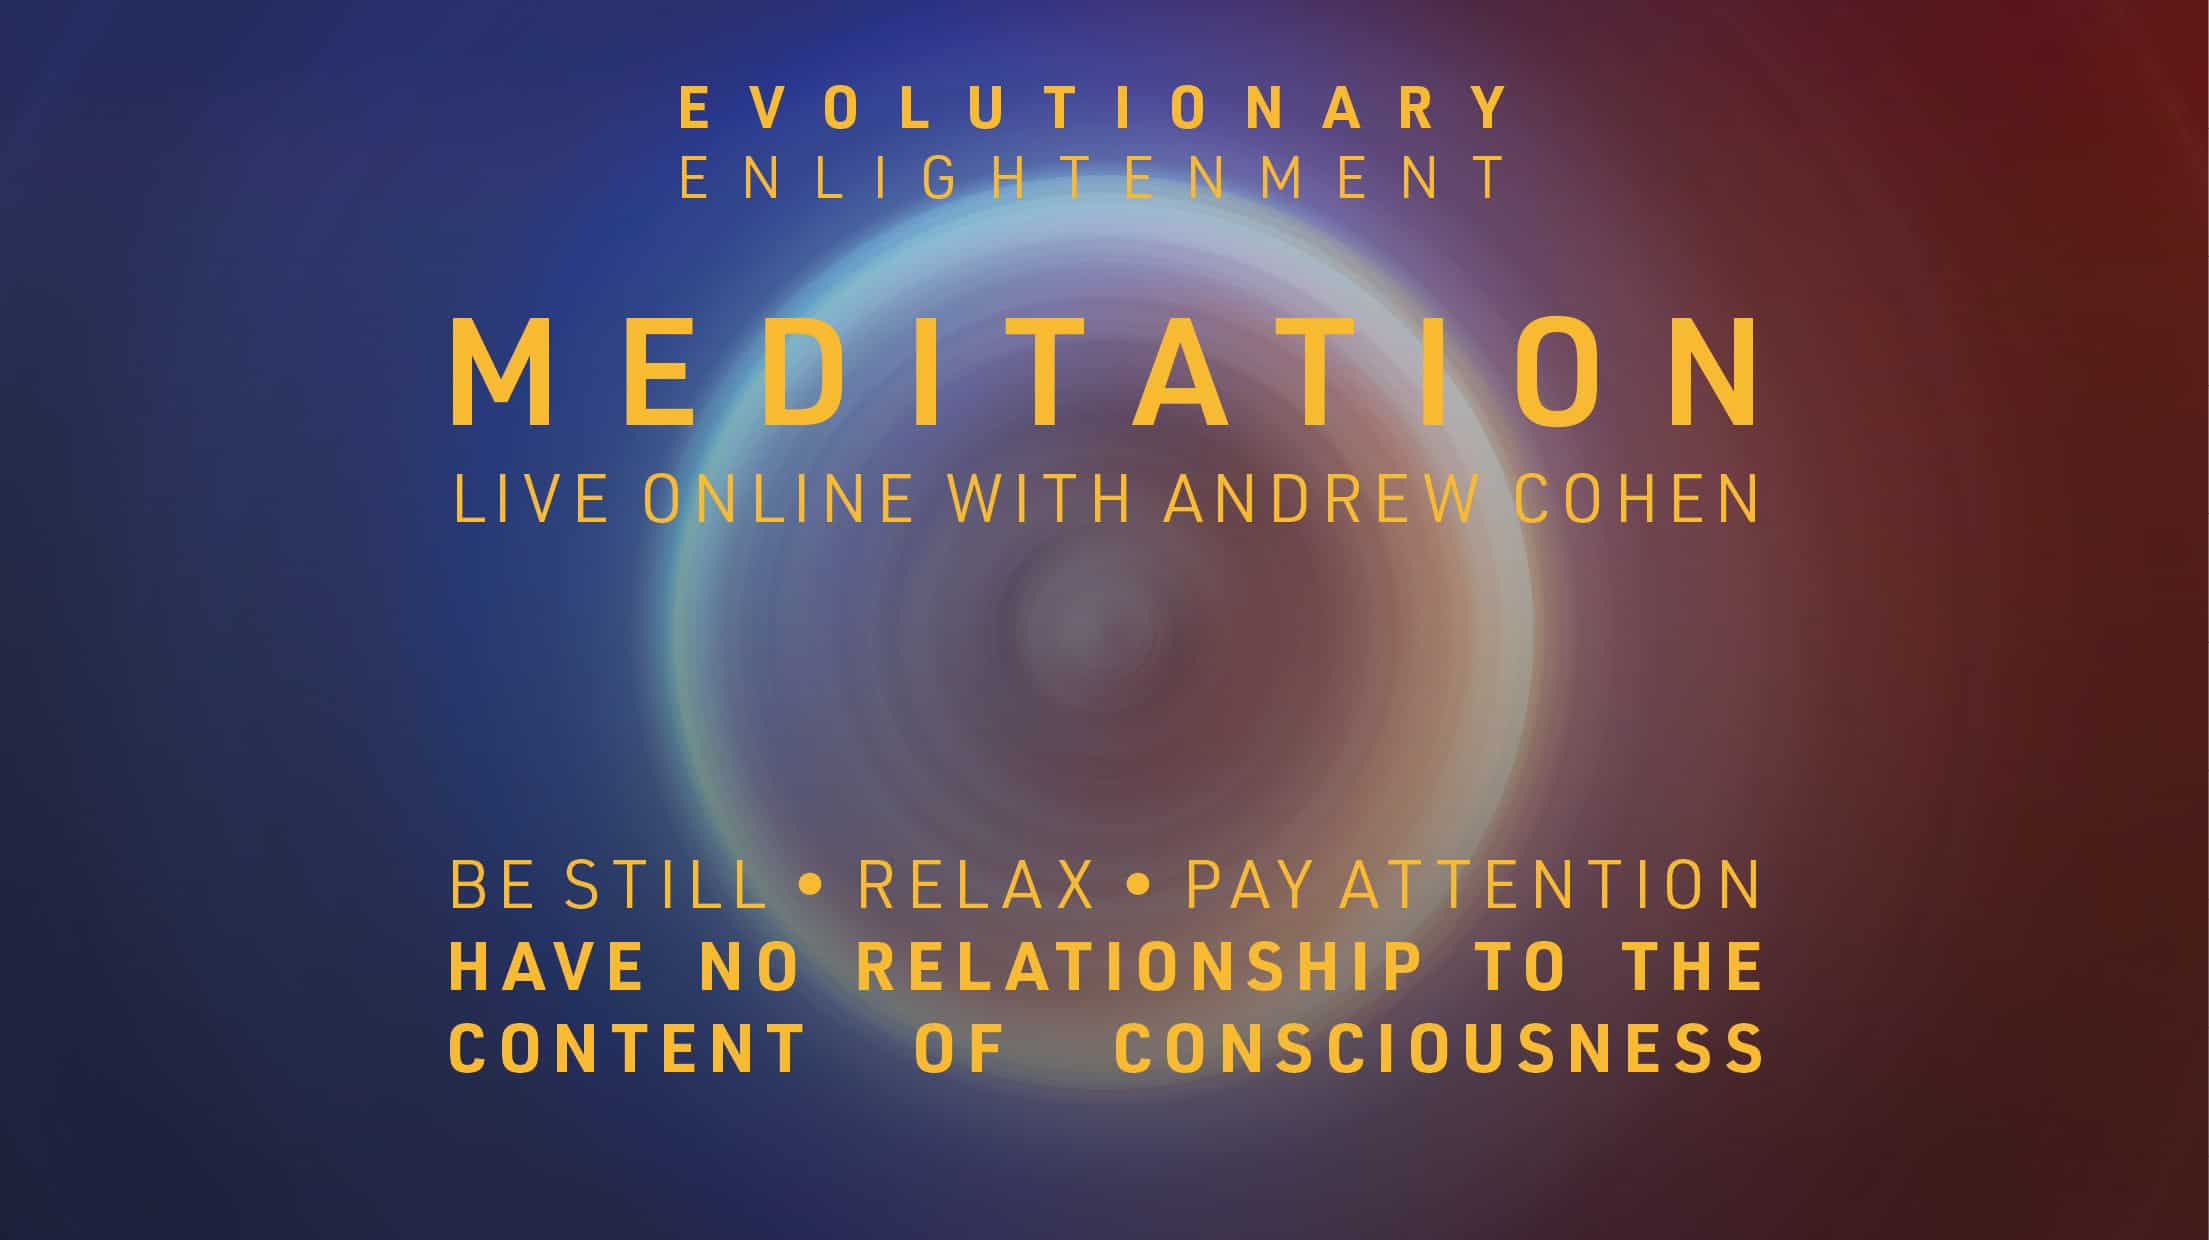 Saturday Meditation with Andrew Cohen